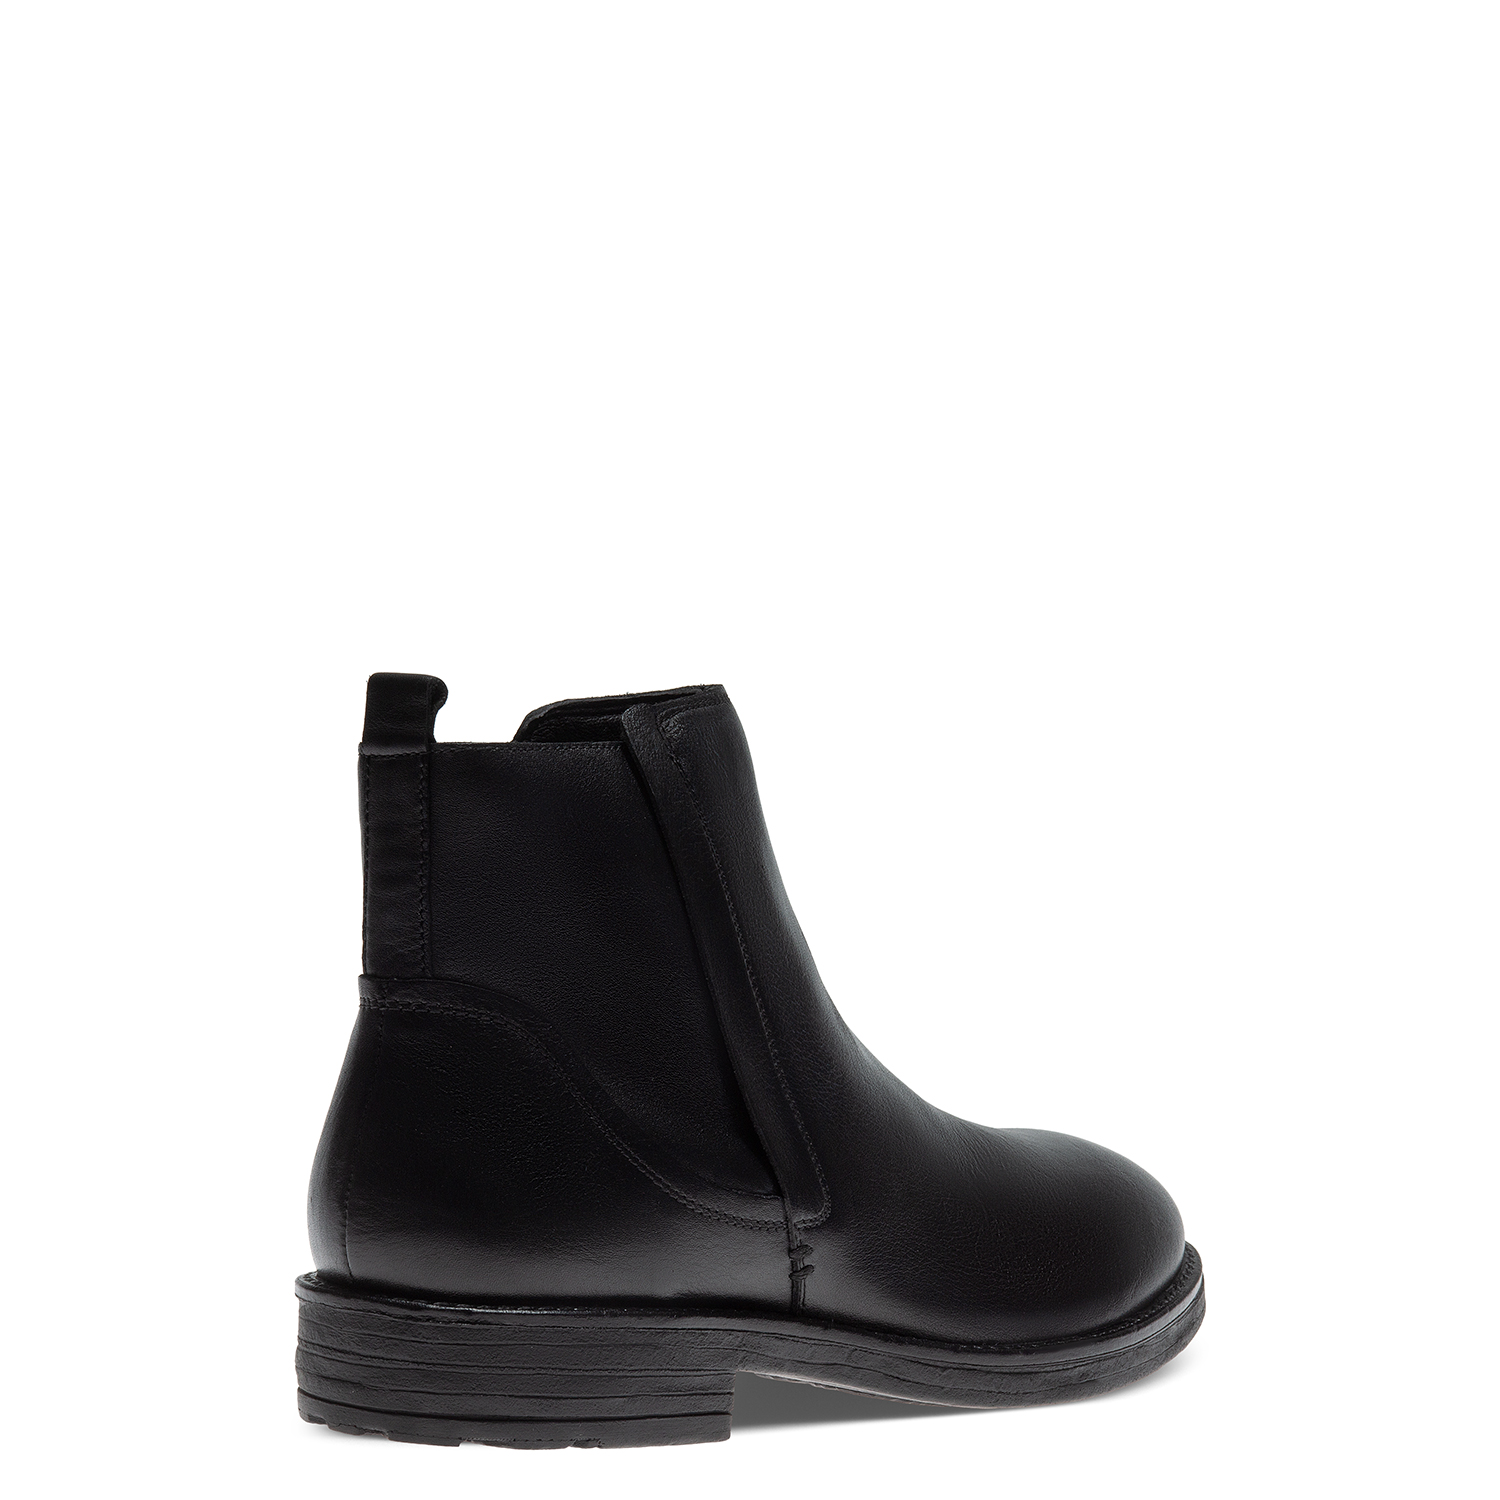 Women's fur-lined mid-calf boots PAZOLINI OO-LUA2-1M